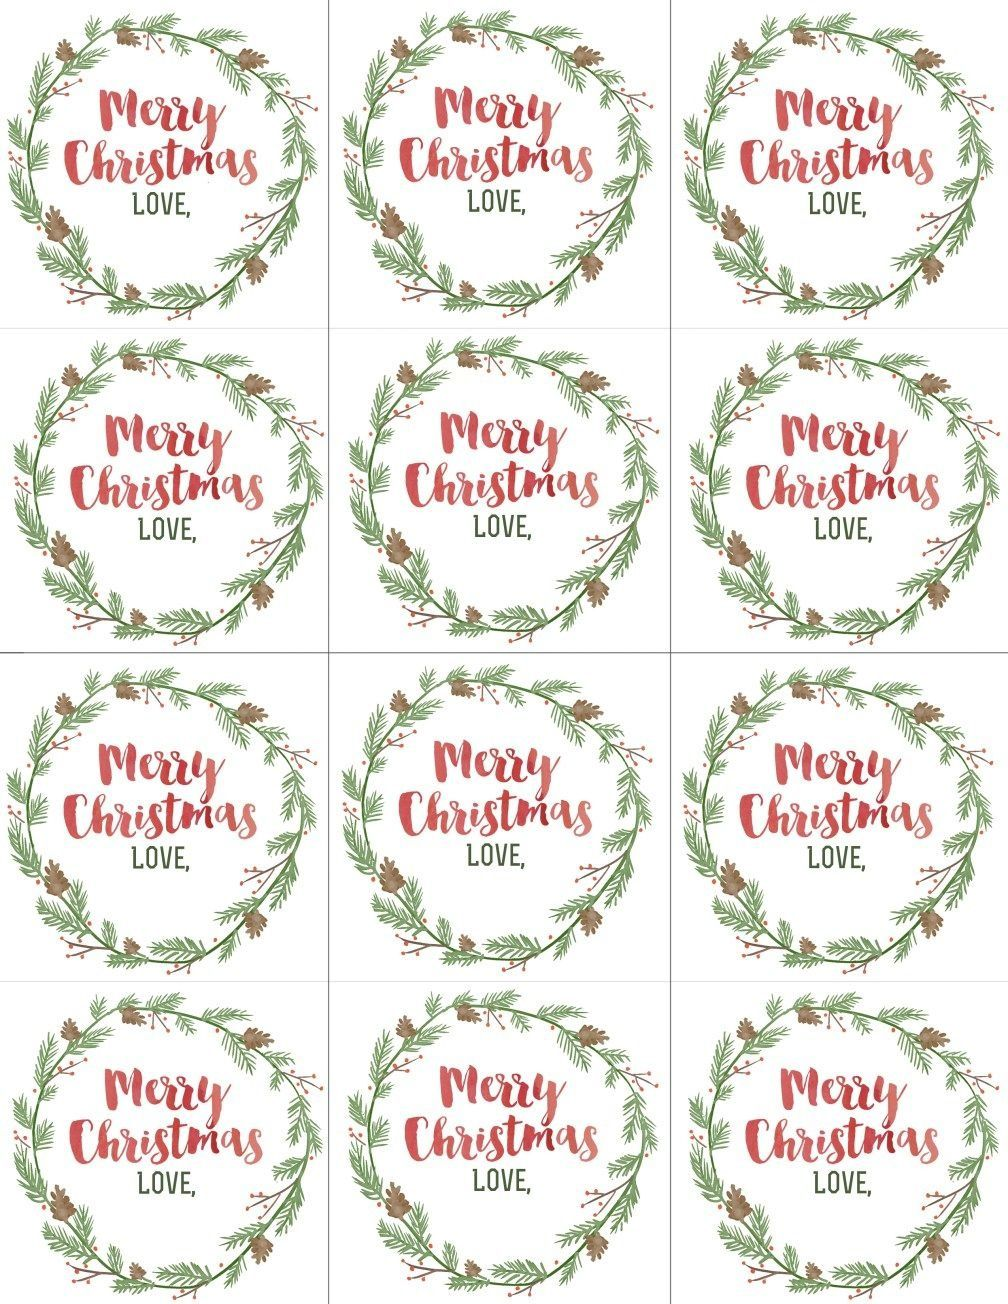 004 Wondrou Printable Christma Gift Tag Template Example  Templates Free Holiday For WordFull